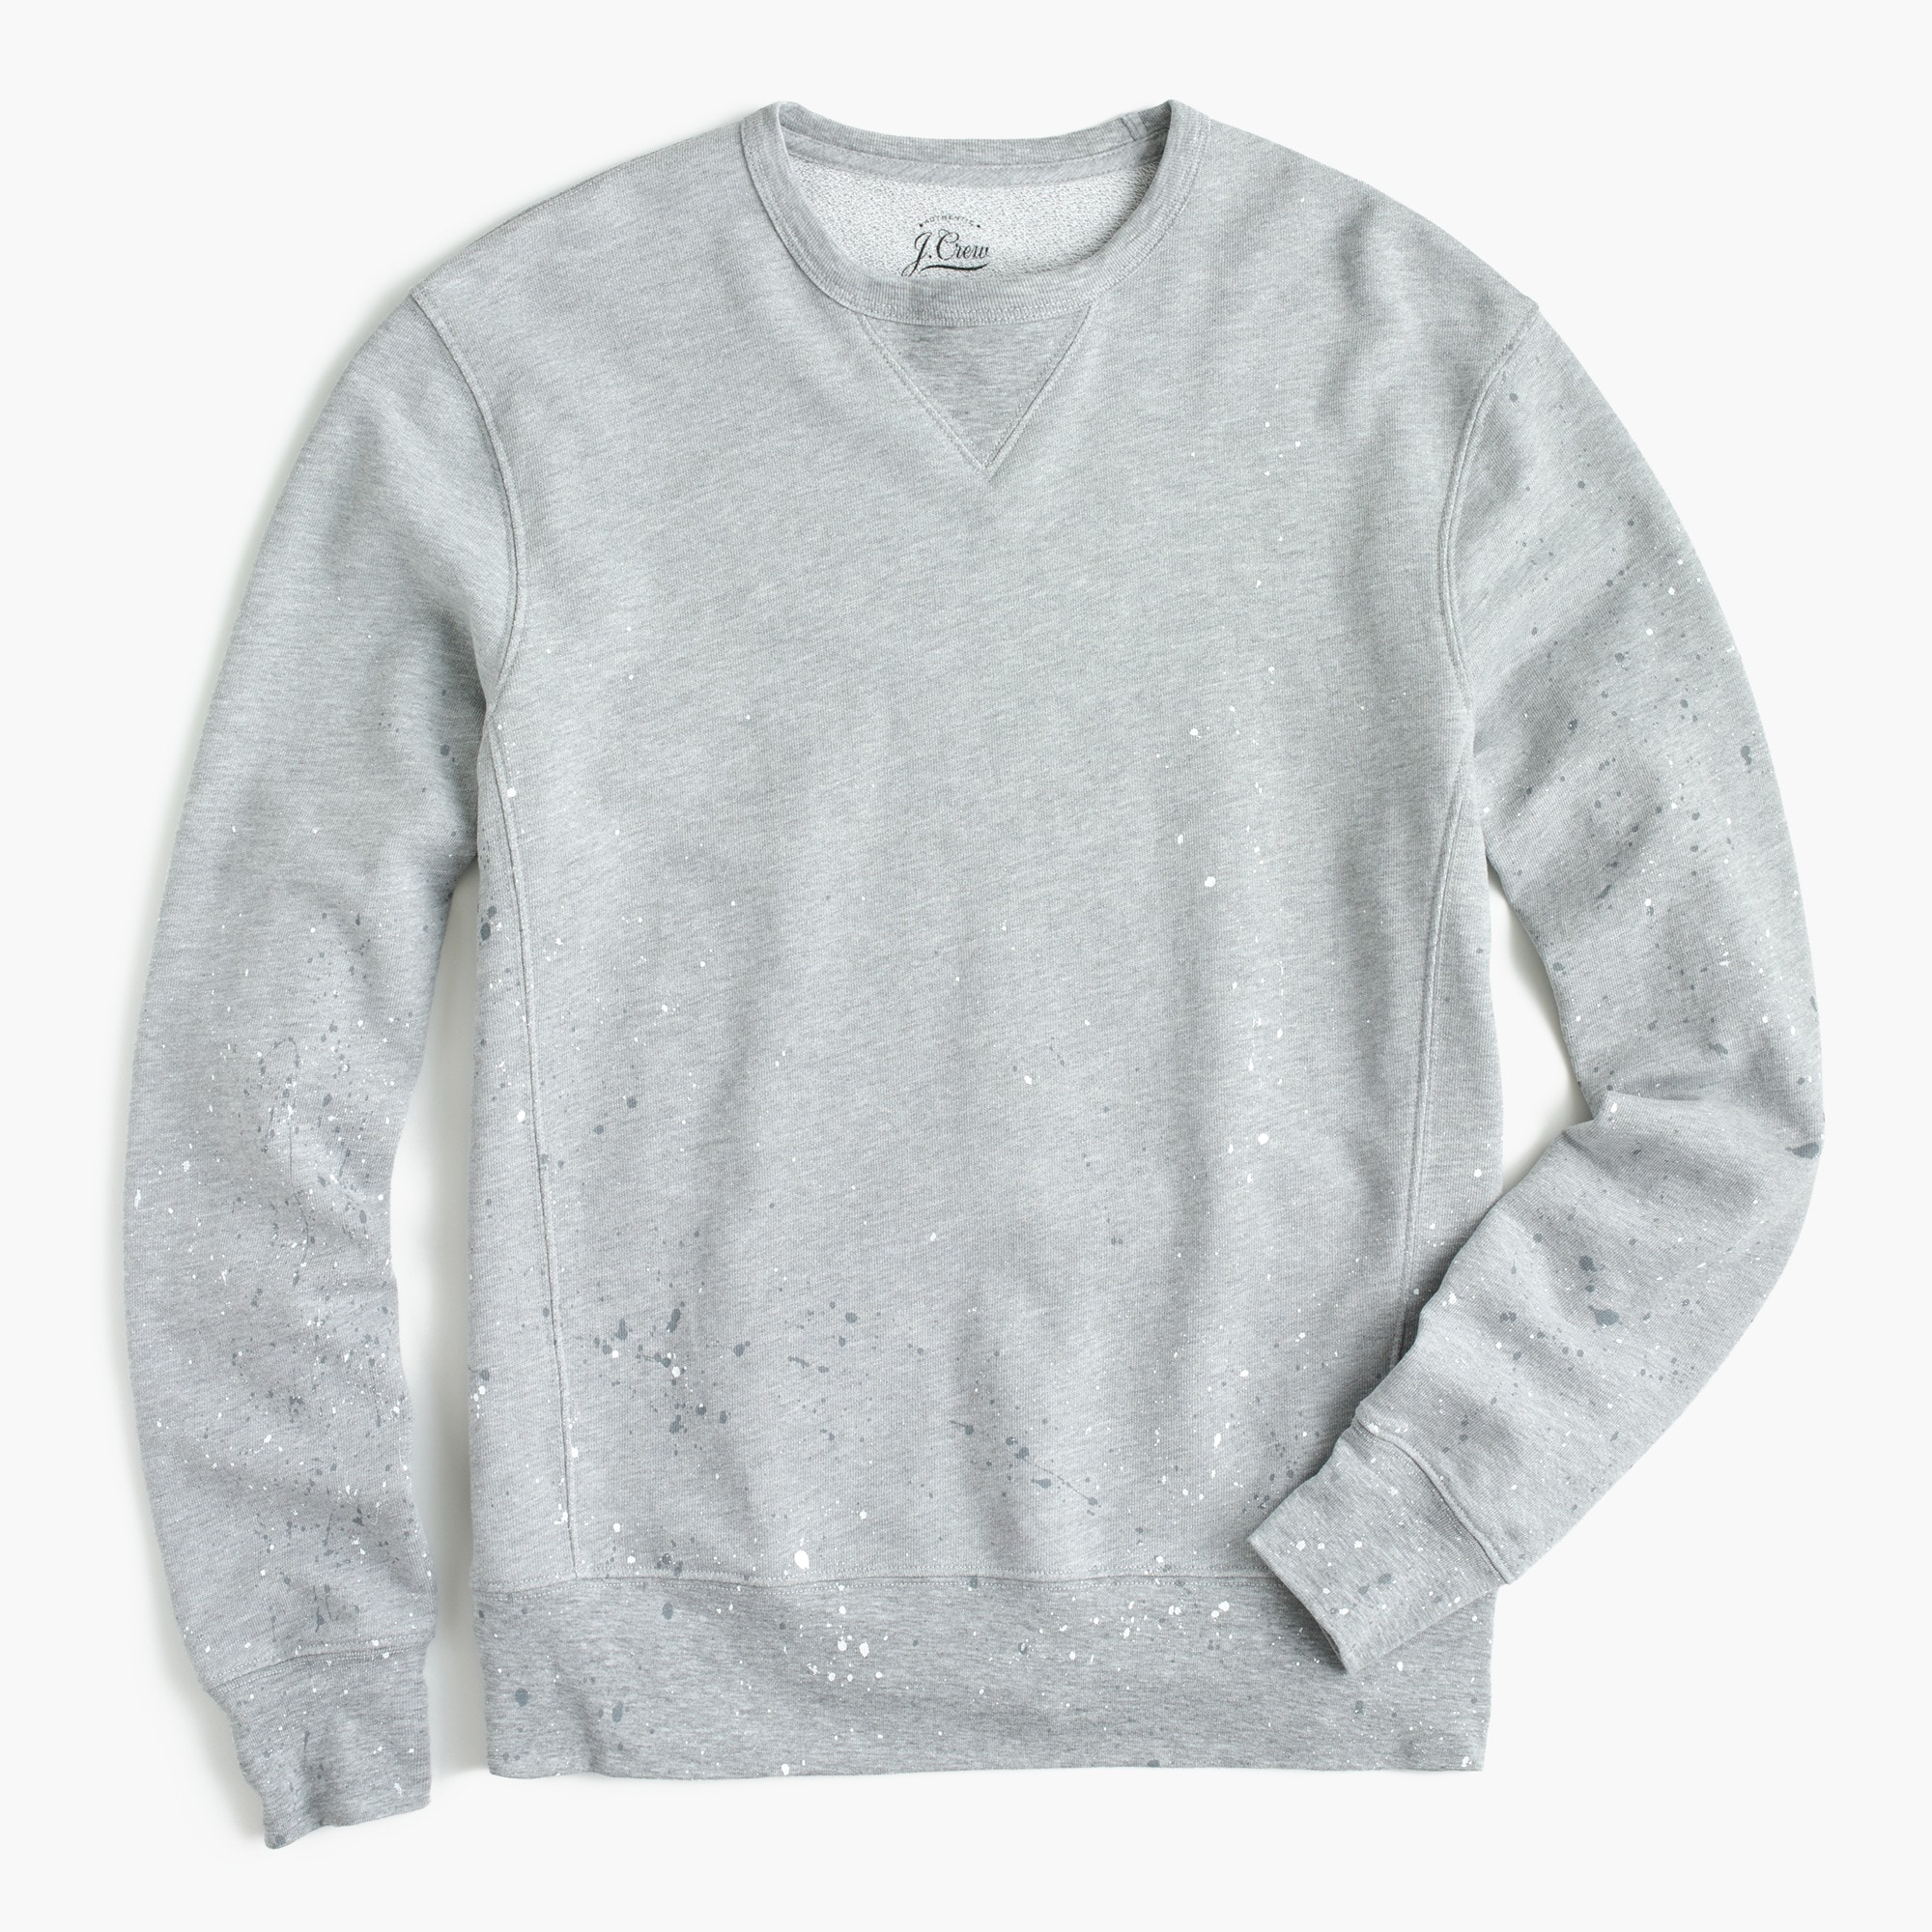 Crewneck sweatshirt in paint splatter